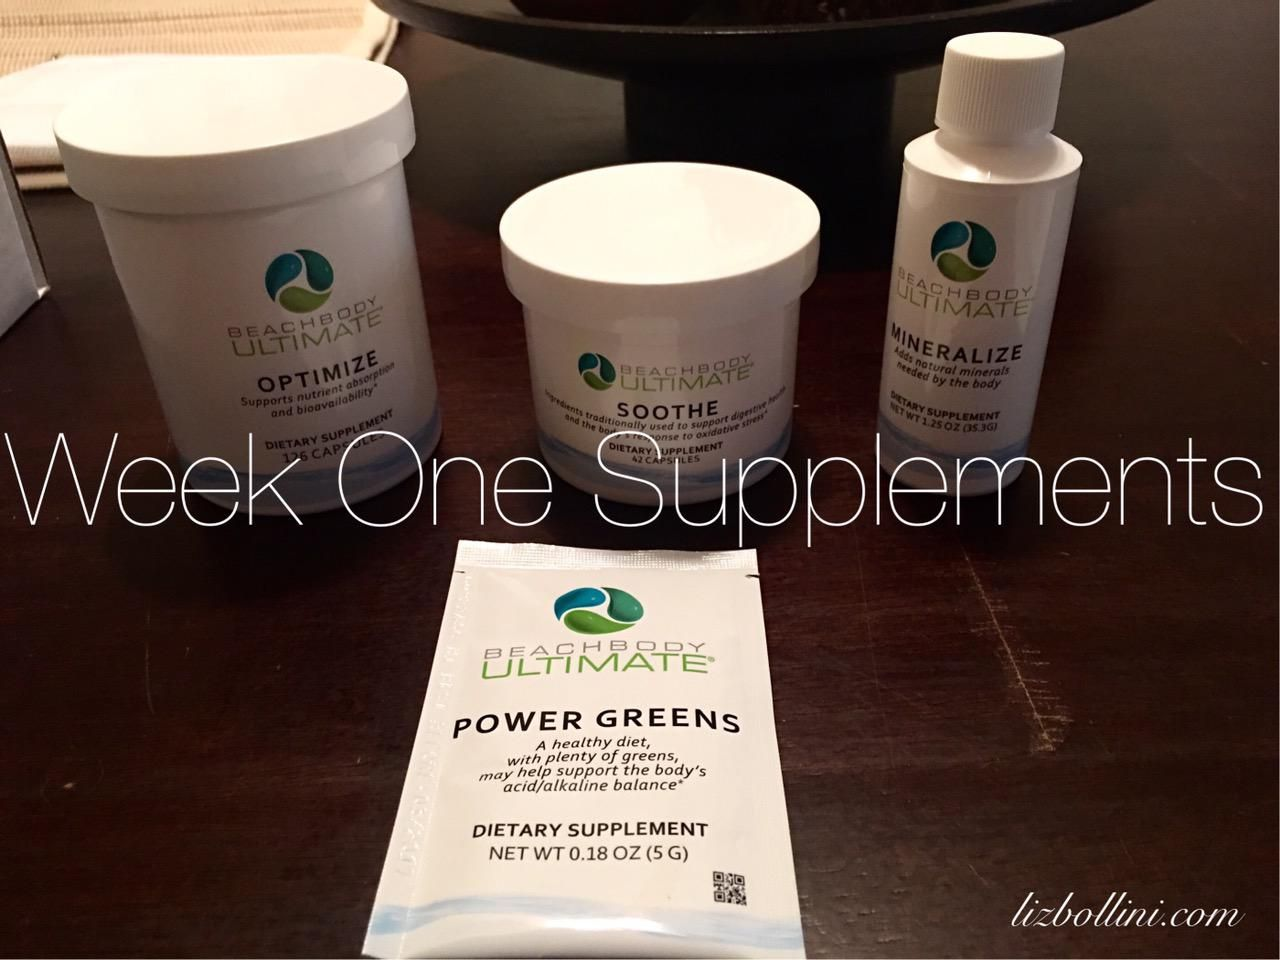 Week One Supps  Optimize- Support nutrient absorption  Mineralize- Add natural minerals needed by the body  Power Greens- A healthy diet with plenty of greens may help support the body's healthy alkalinity  Soothe- Ingredients traditionally used to support digestive health in the body's response to oxidative stress